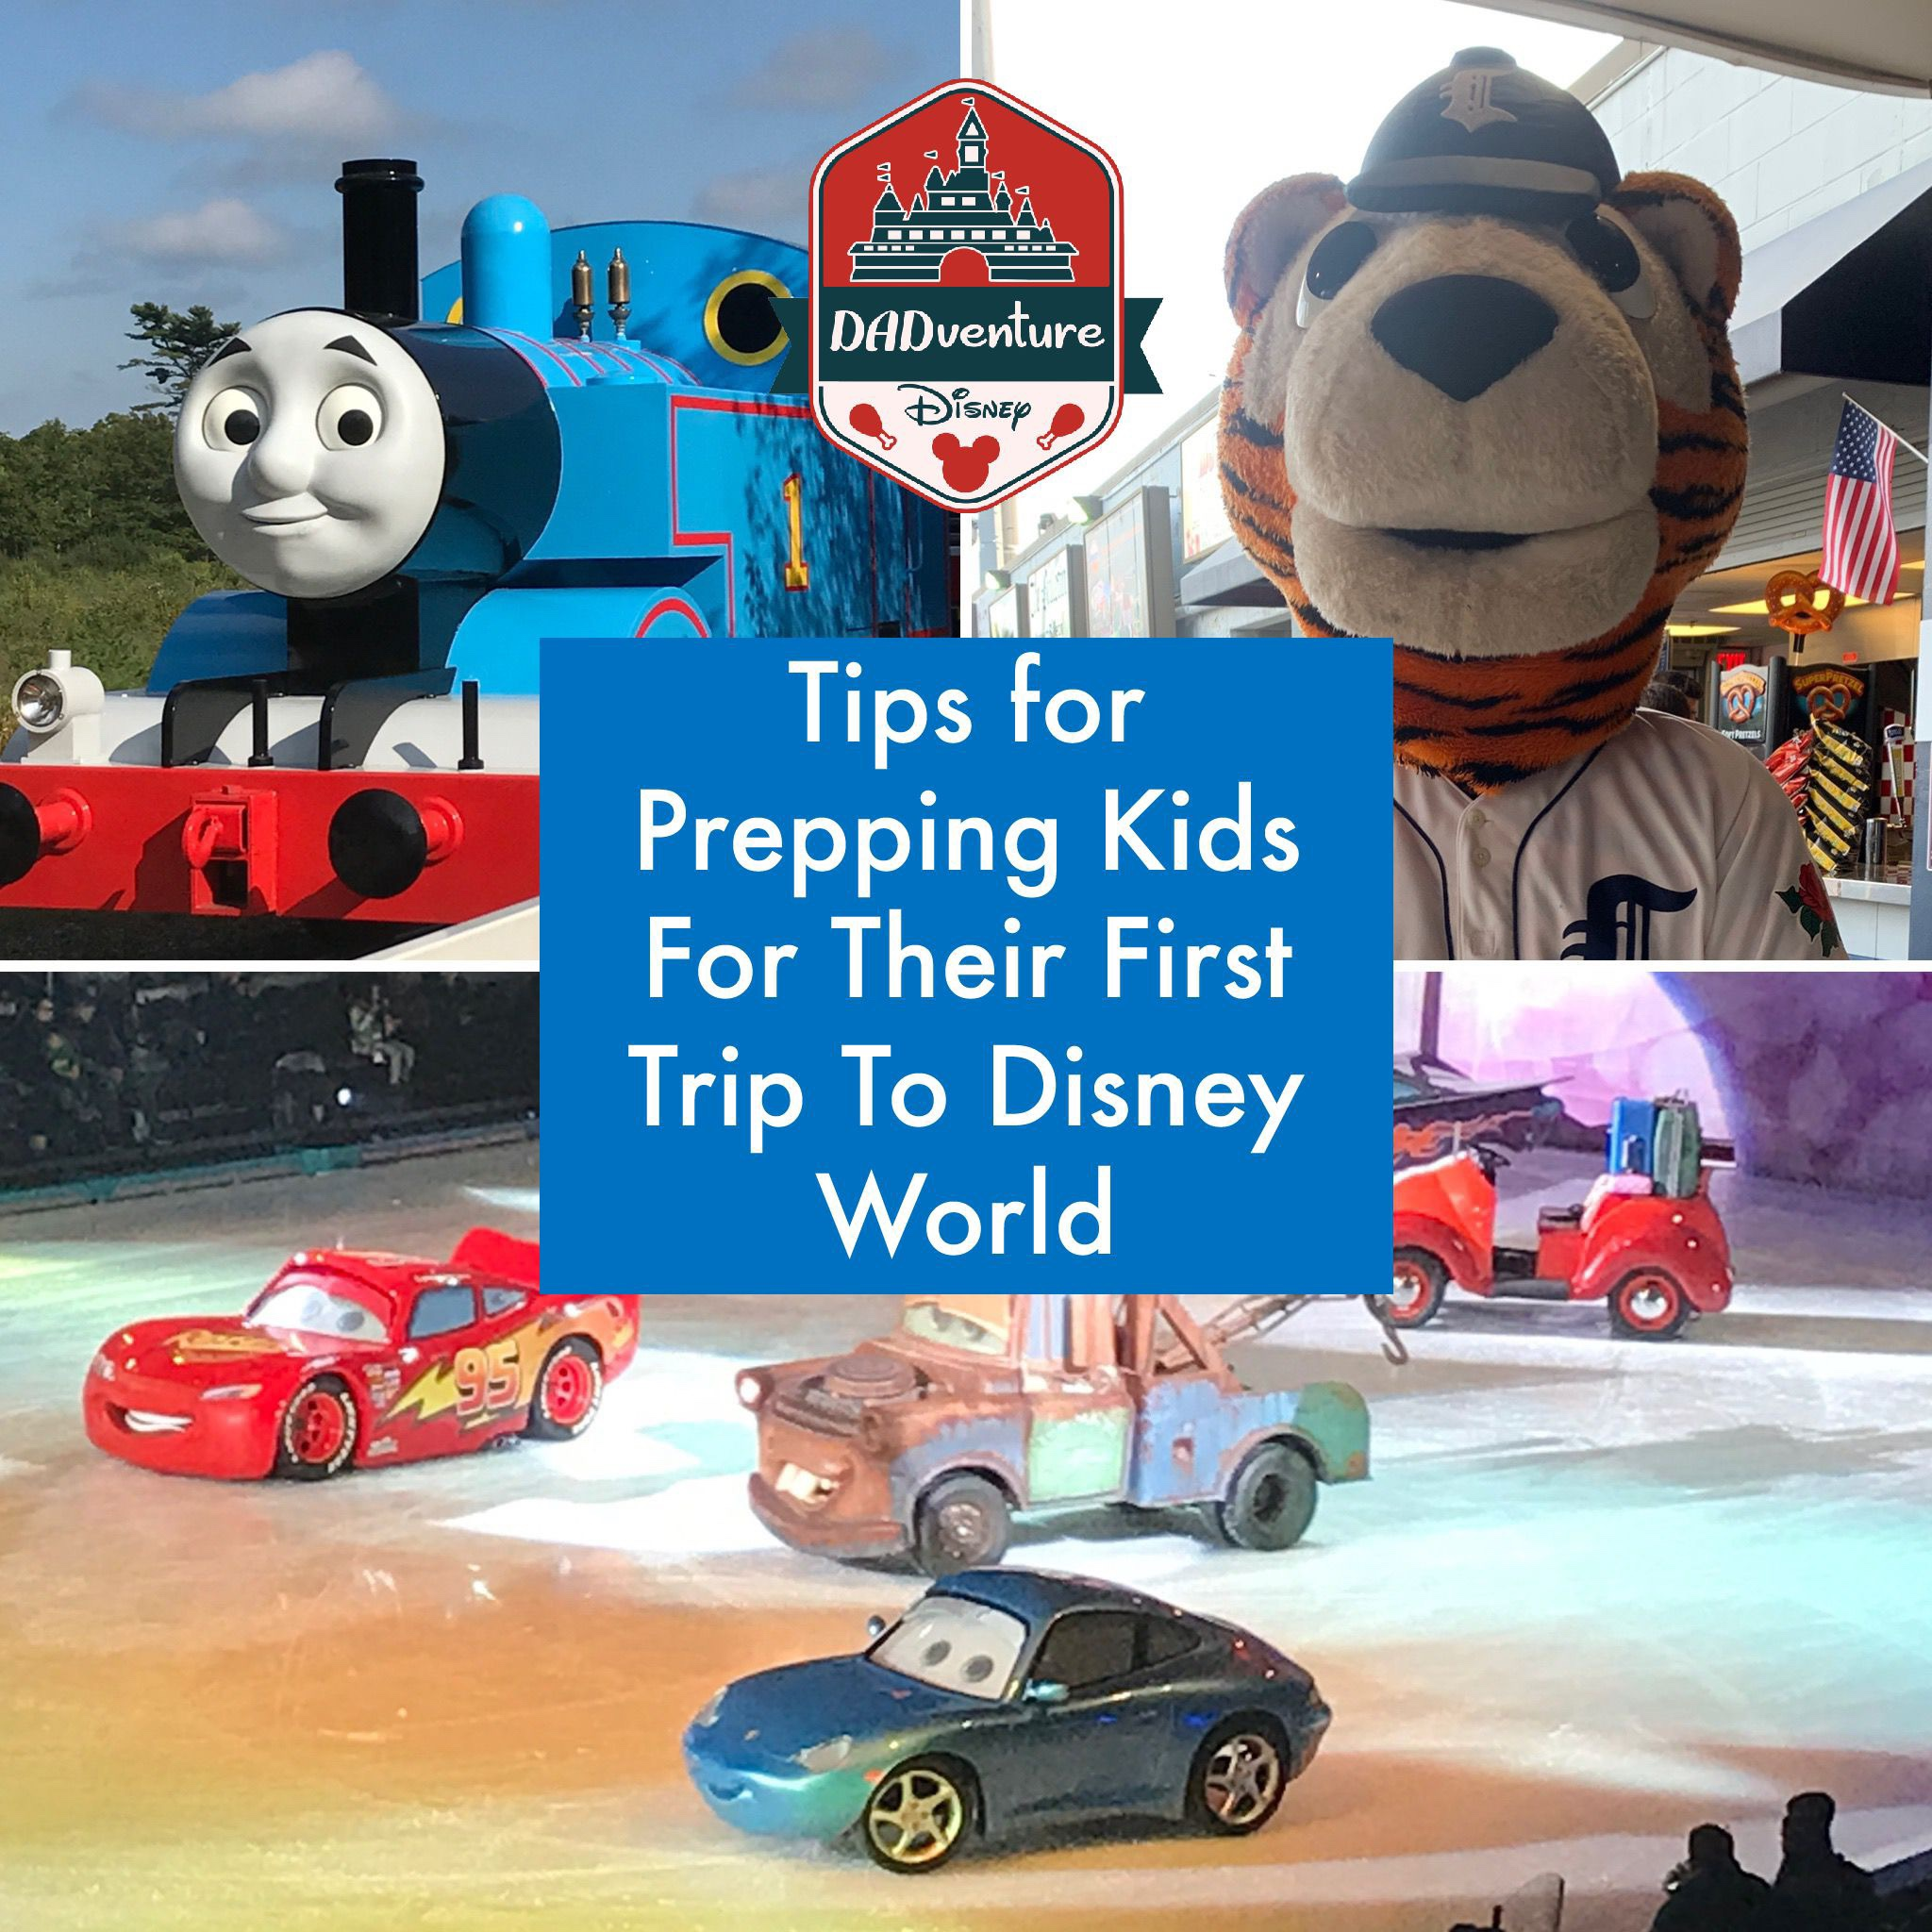 DADventure Disney – Prepping The Little Kids for Your Trip to Walt Disney World